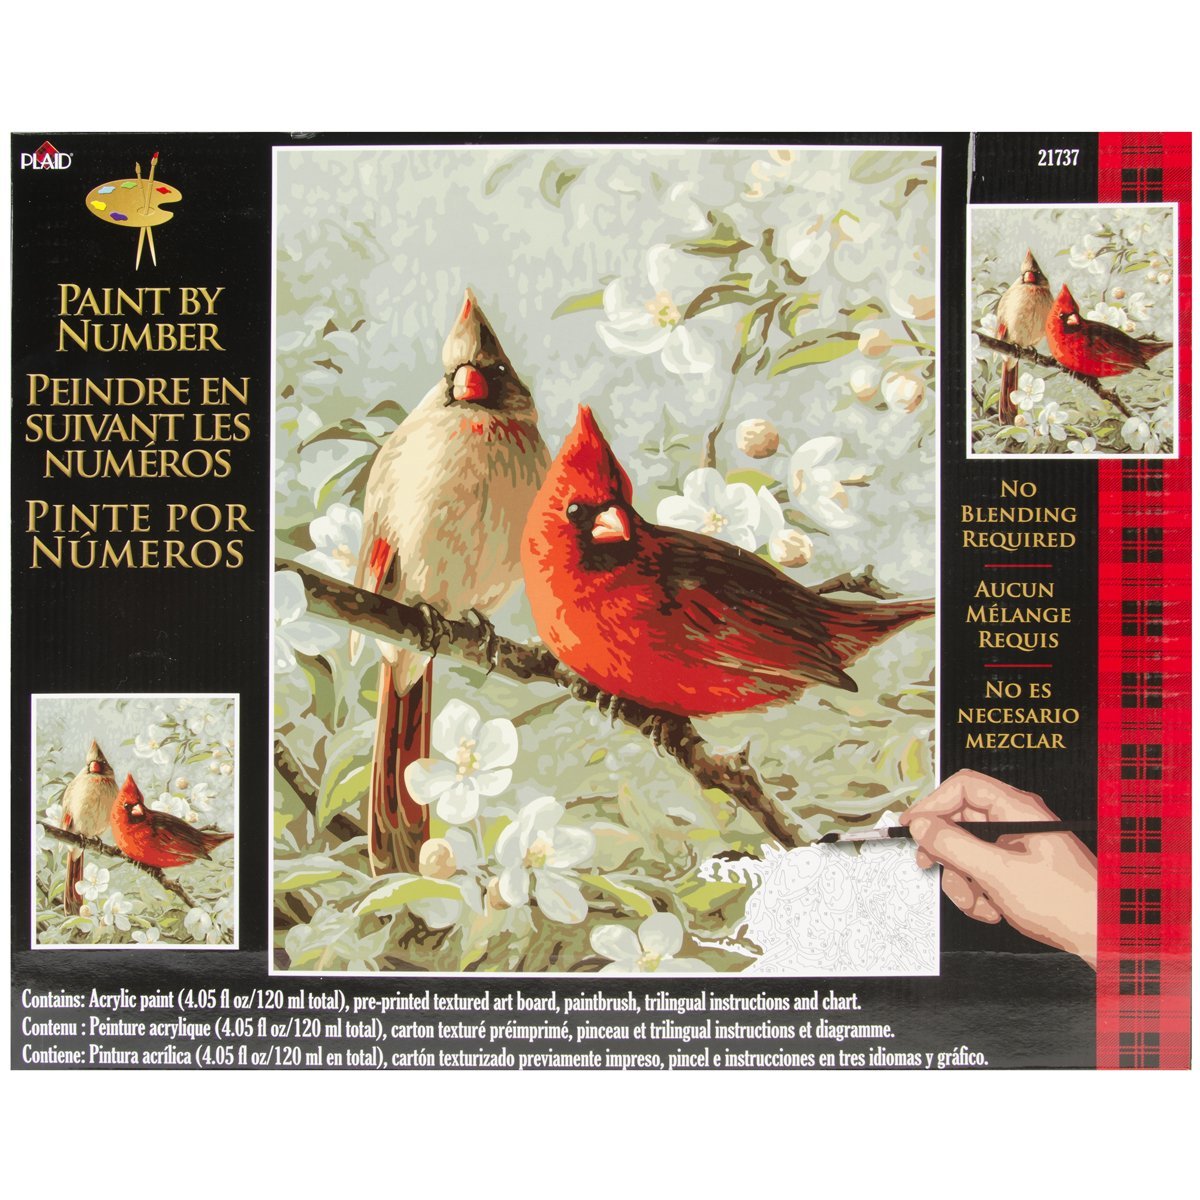 Bird paint by number kits paint by number for adults for Pre printed canvas to paint for adults